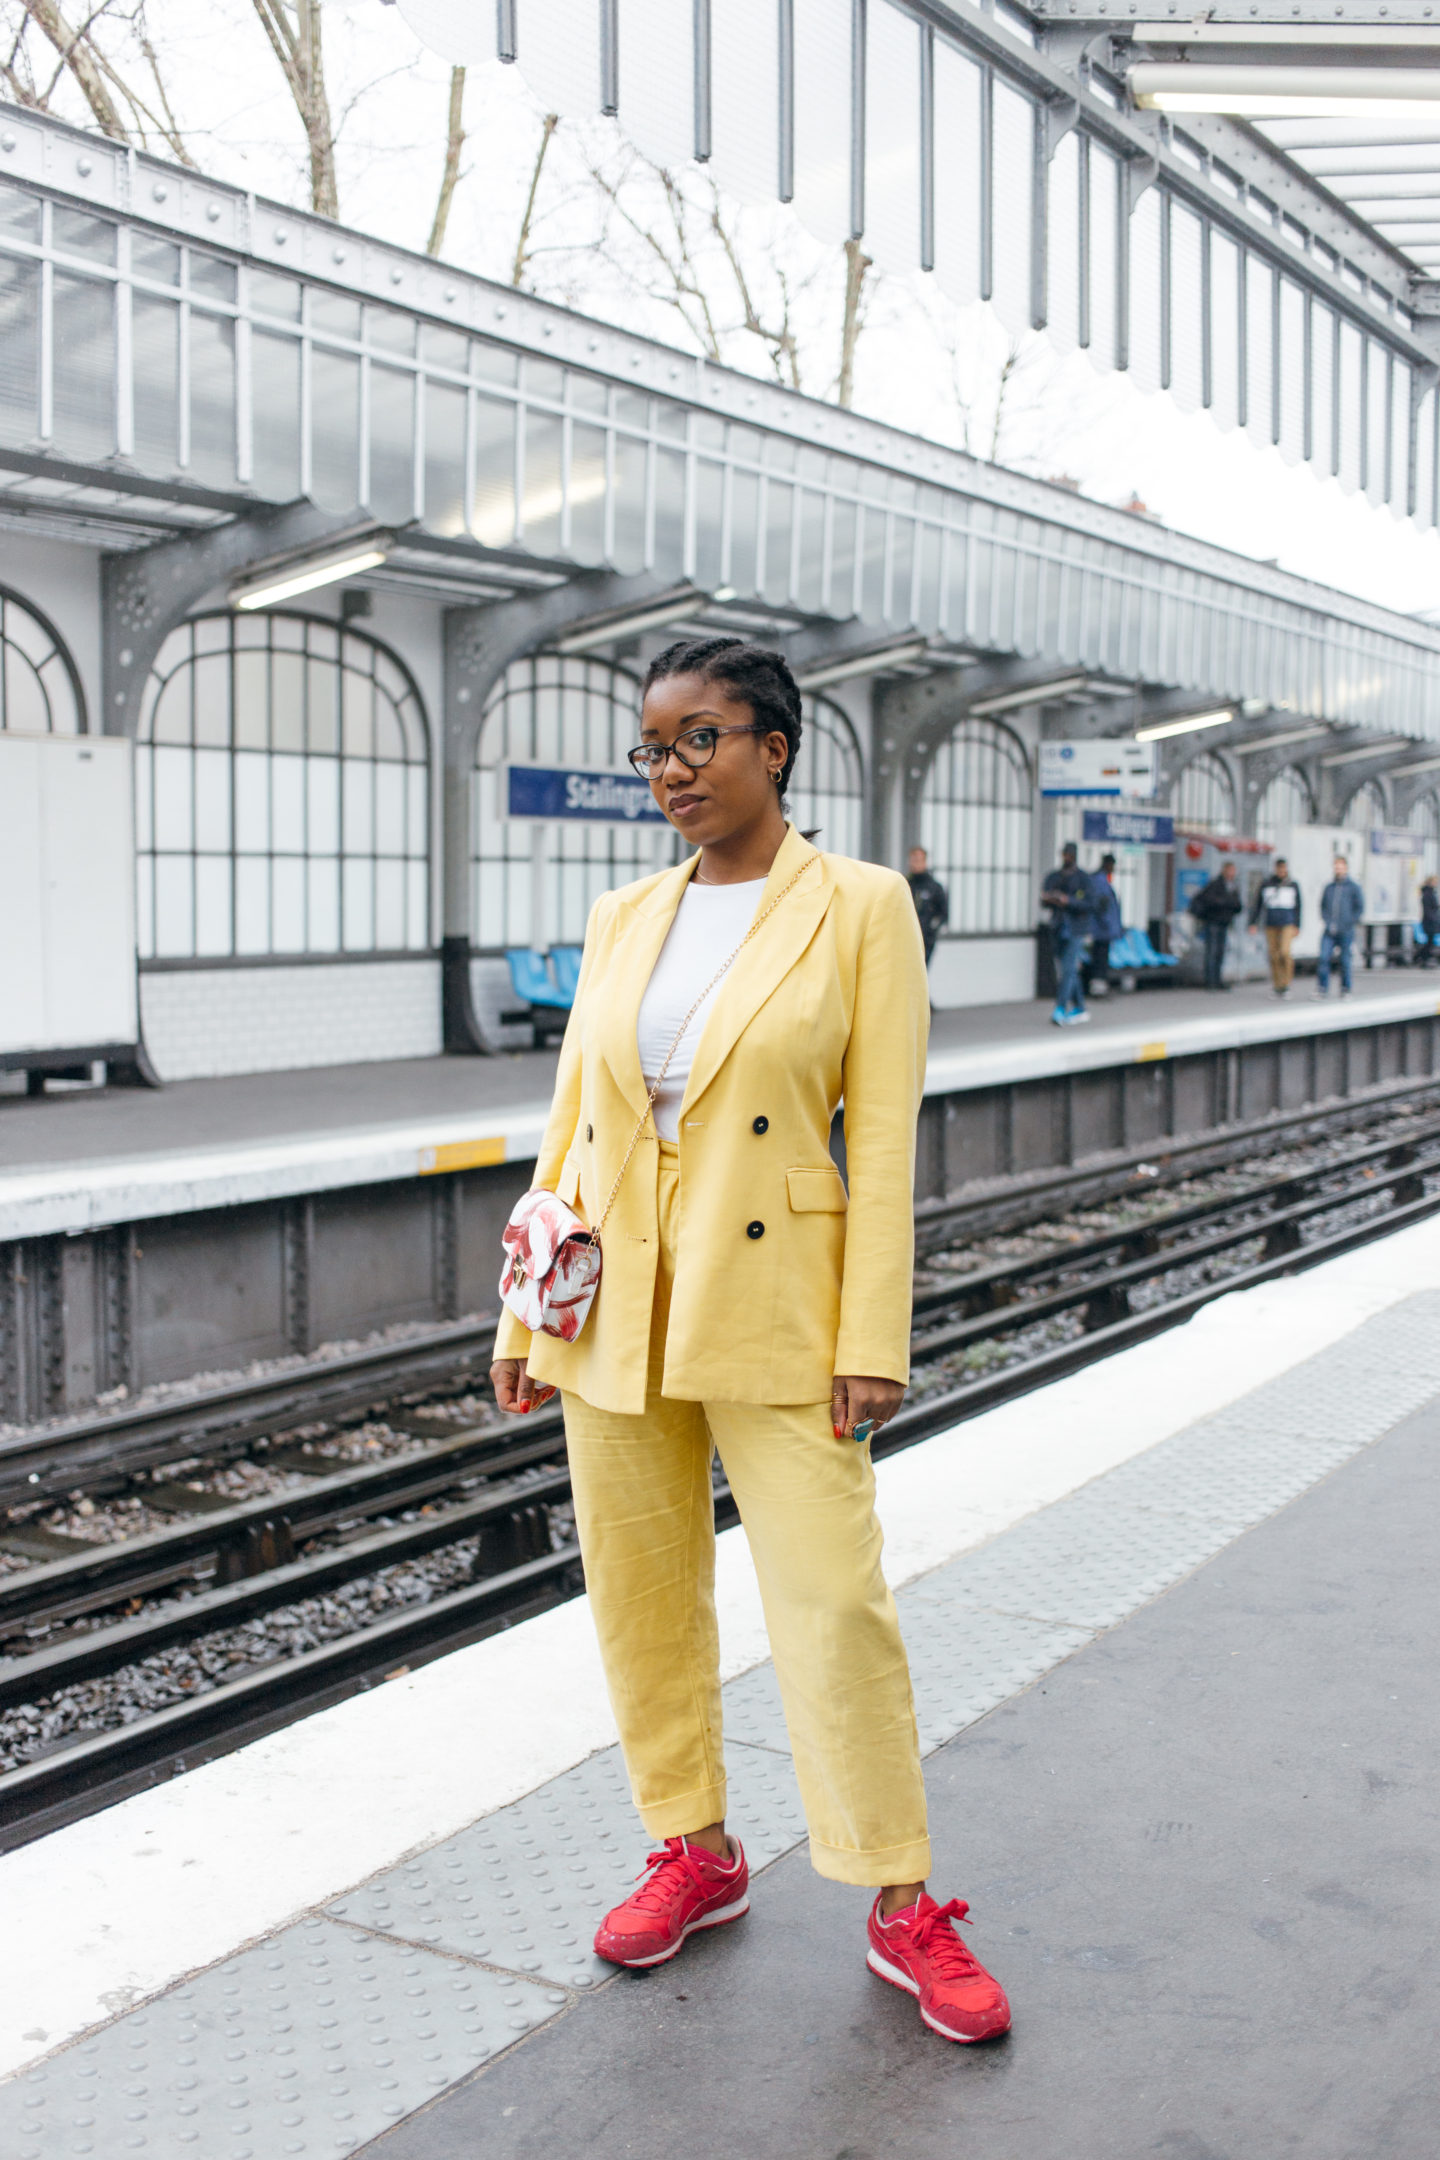 HOW TO WEAR A YELLOW POWER SUIT ON CASUAL MODE ?